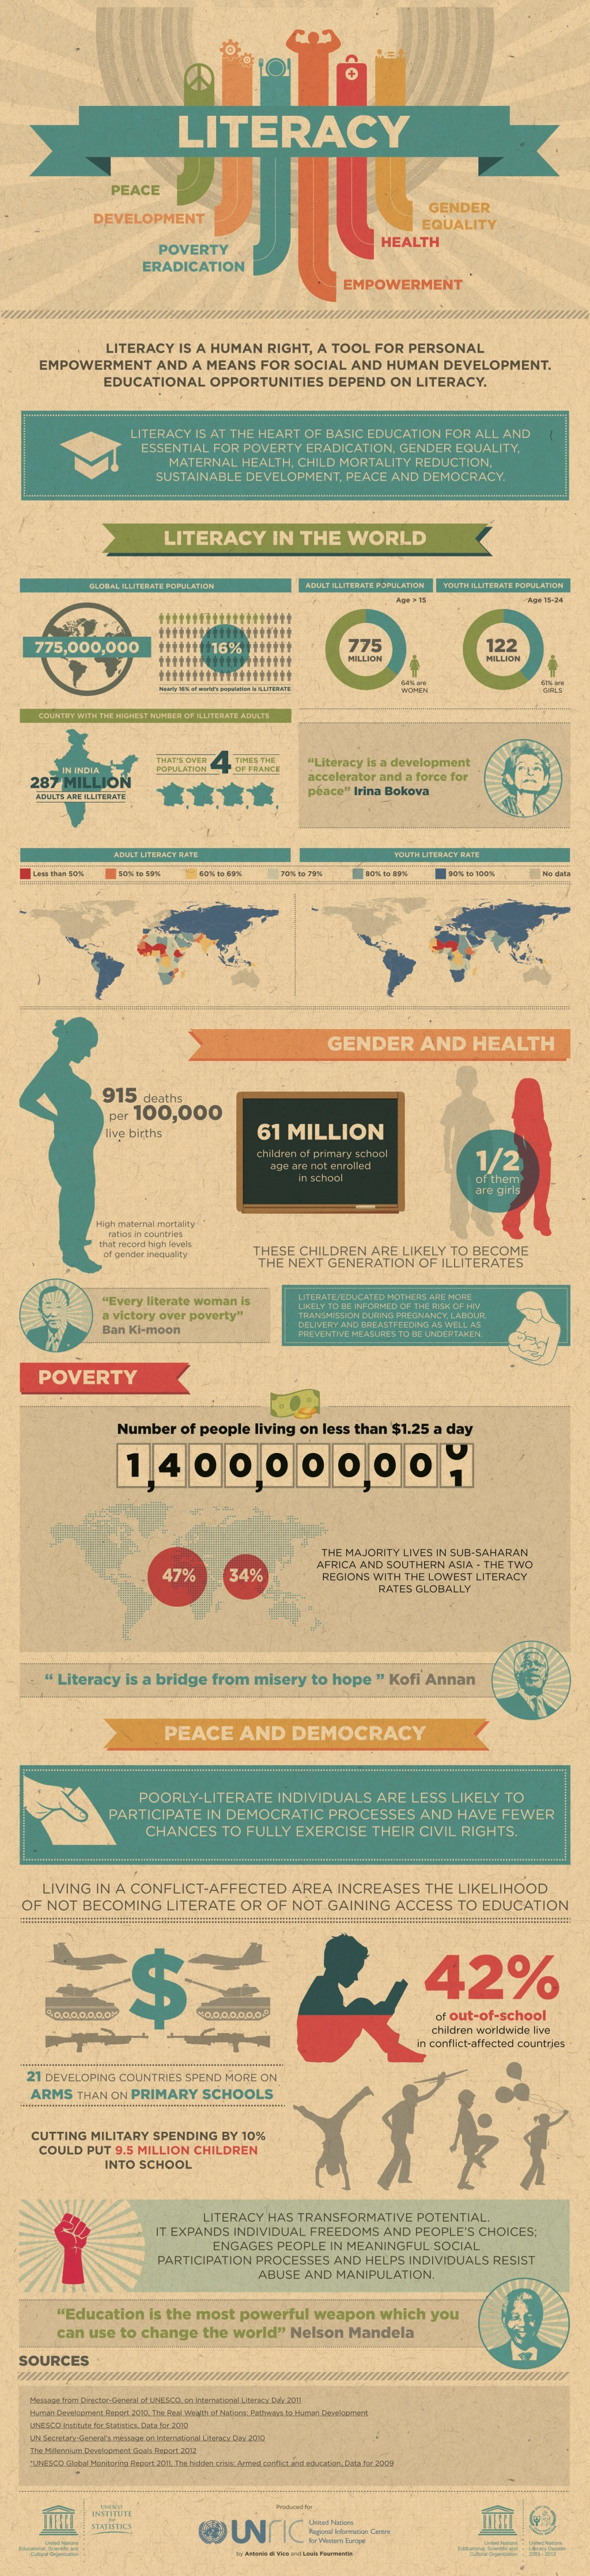 literacy-peace-infographic-final-en.jpg